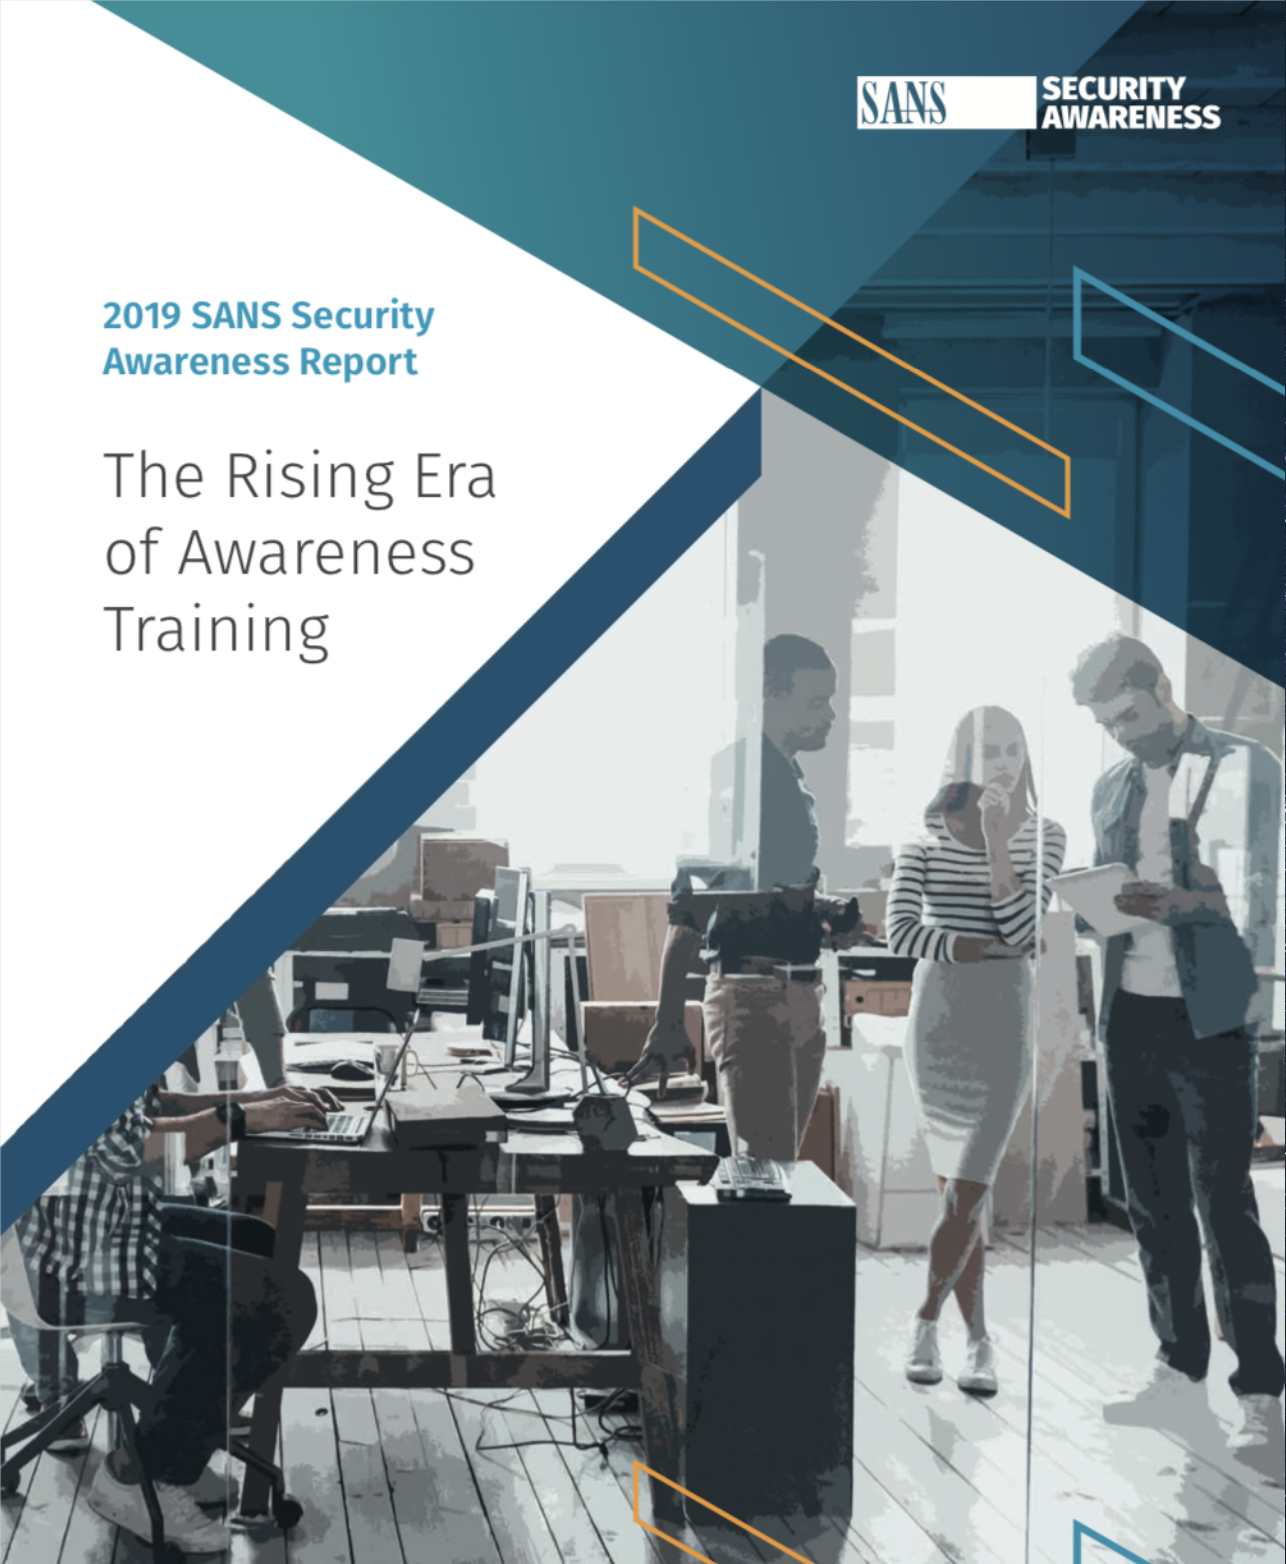 2019 SANS security awareness report: the rising era of awareness training